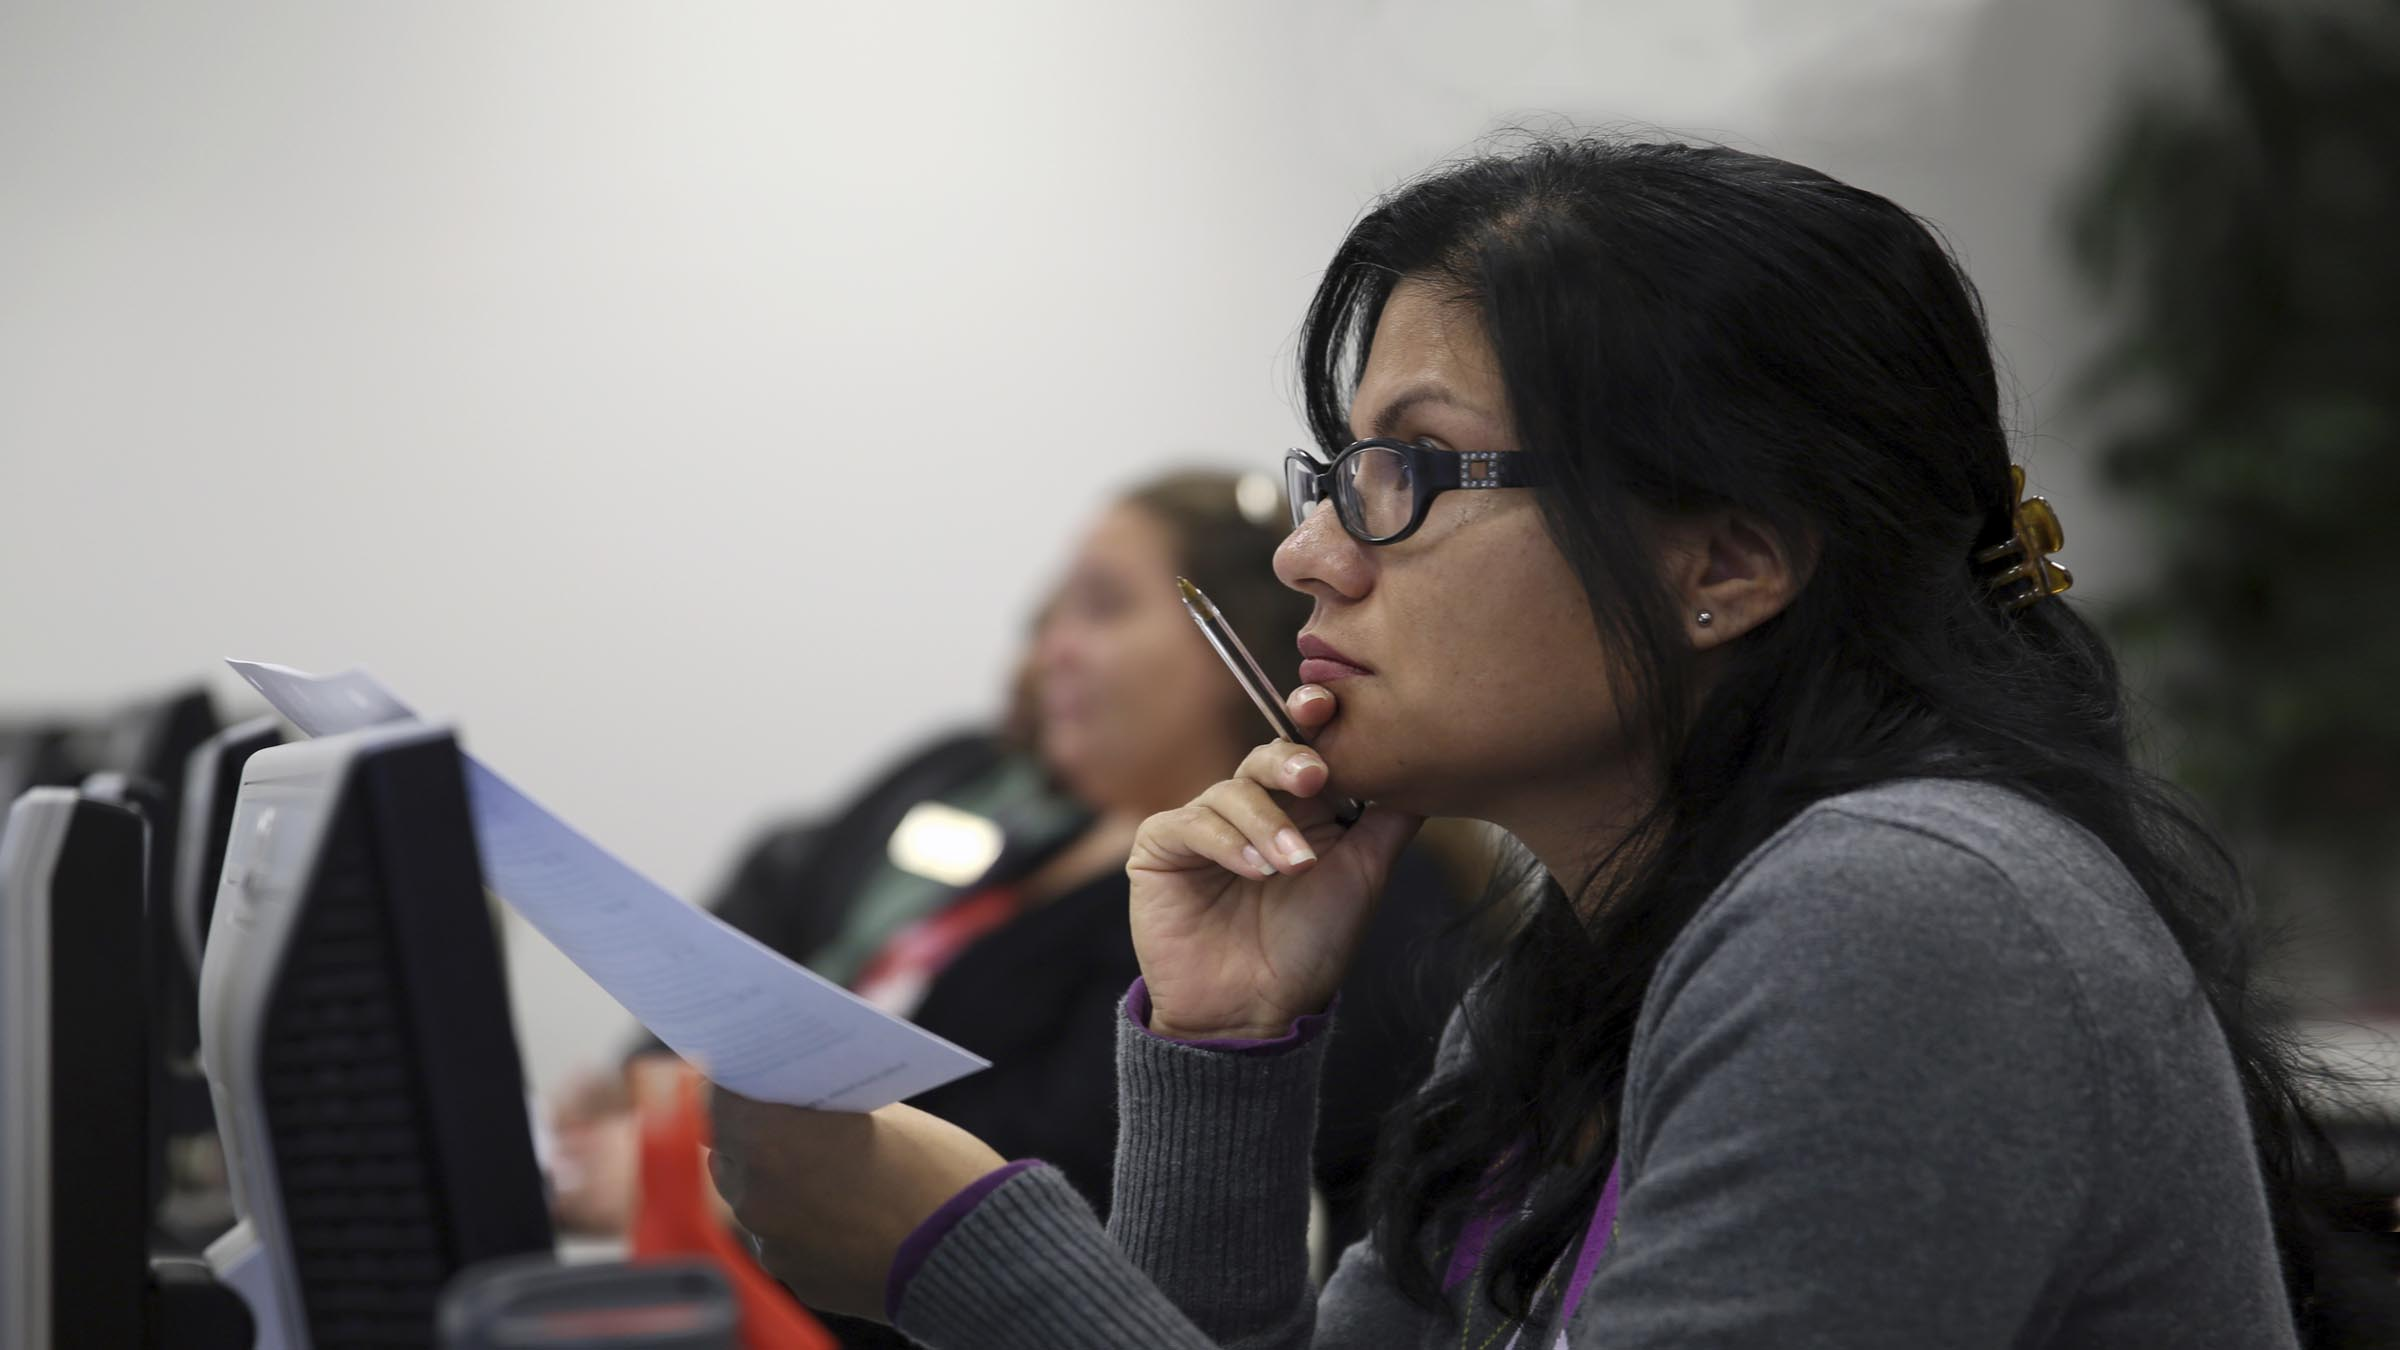 Woman with papers in hand listening to speaker